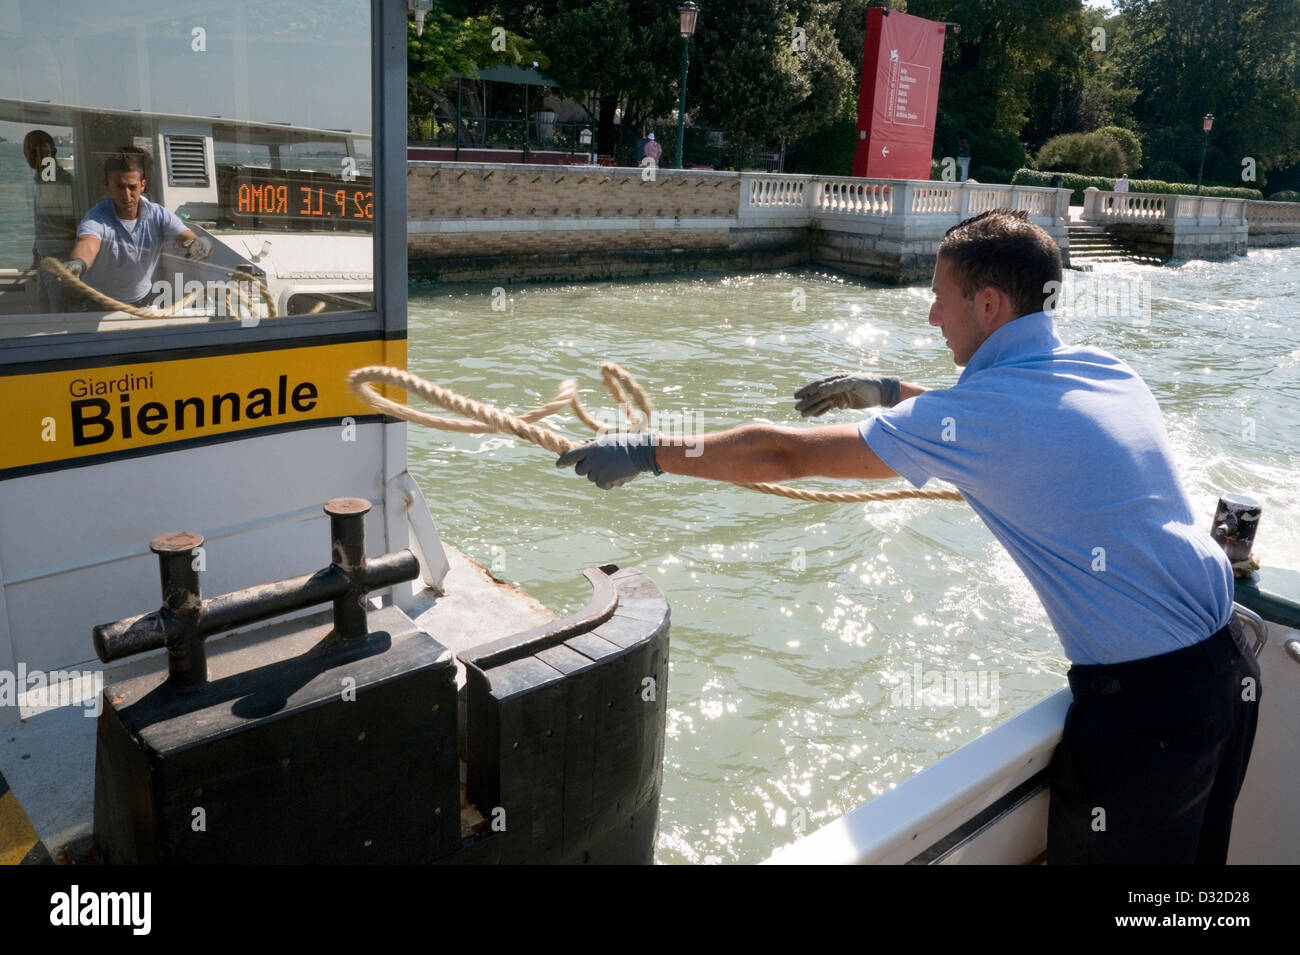 A vaporetto ties-up at the Biennale stop, Castello, Venice, Italy. - Stock Image